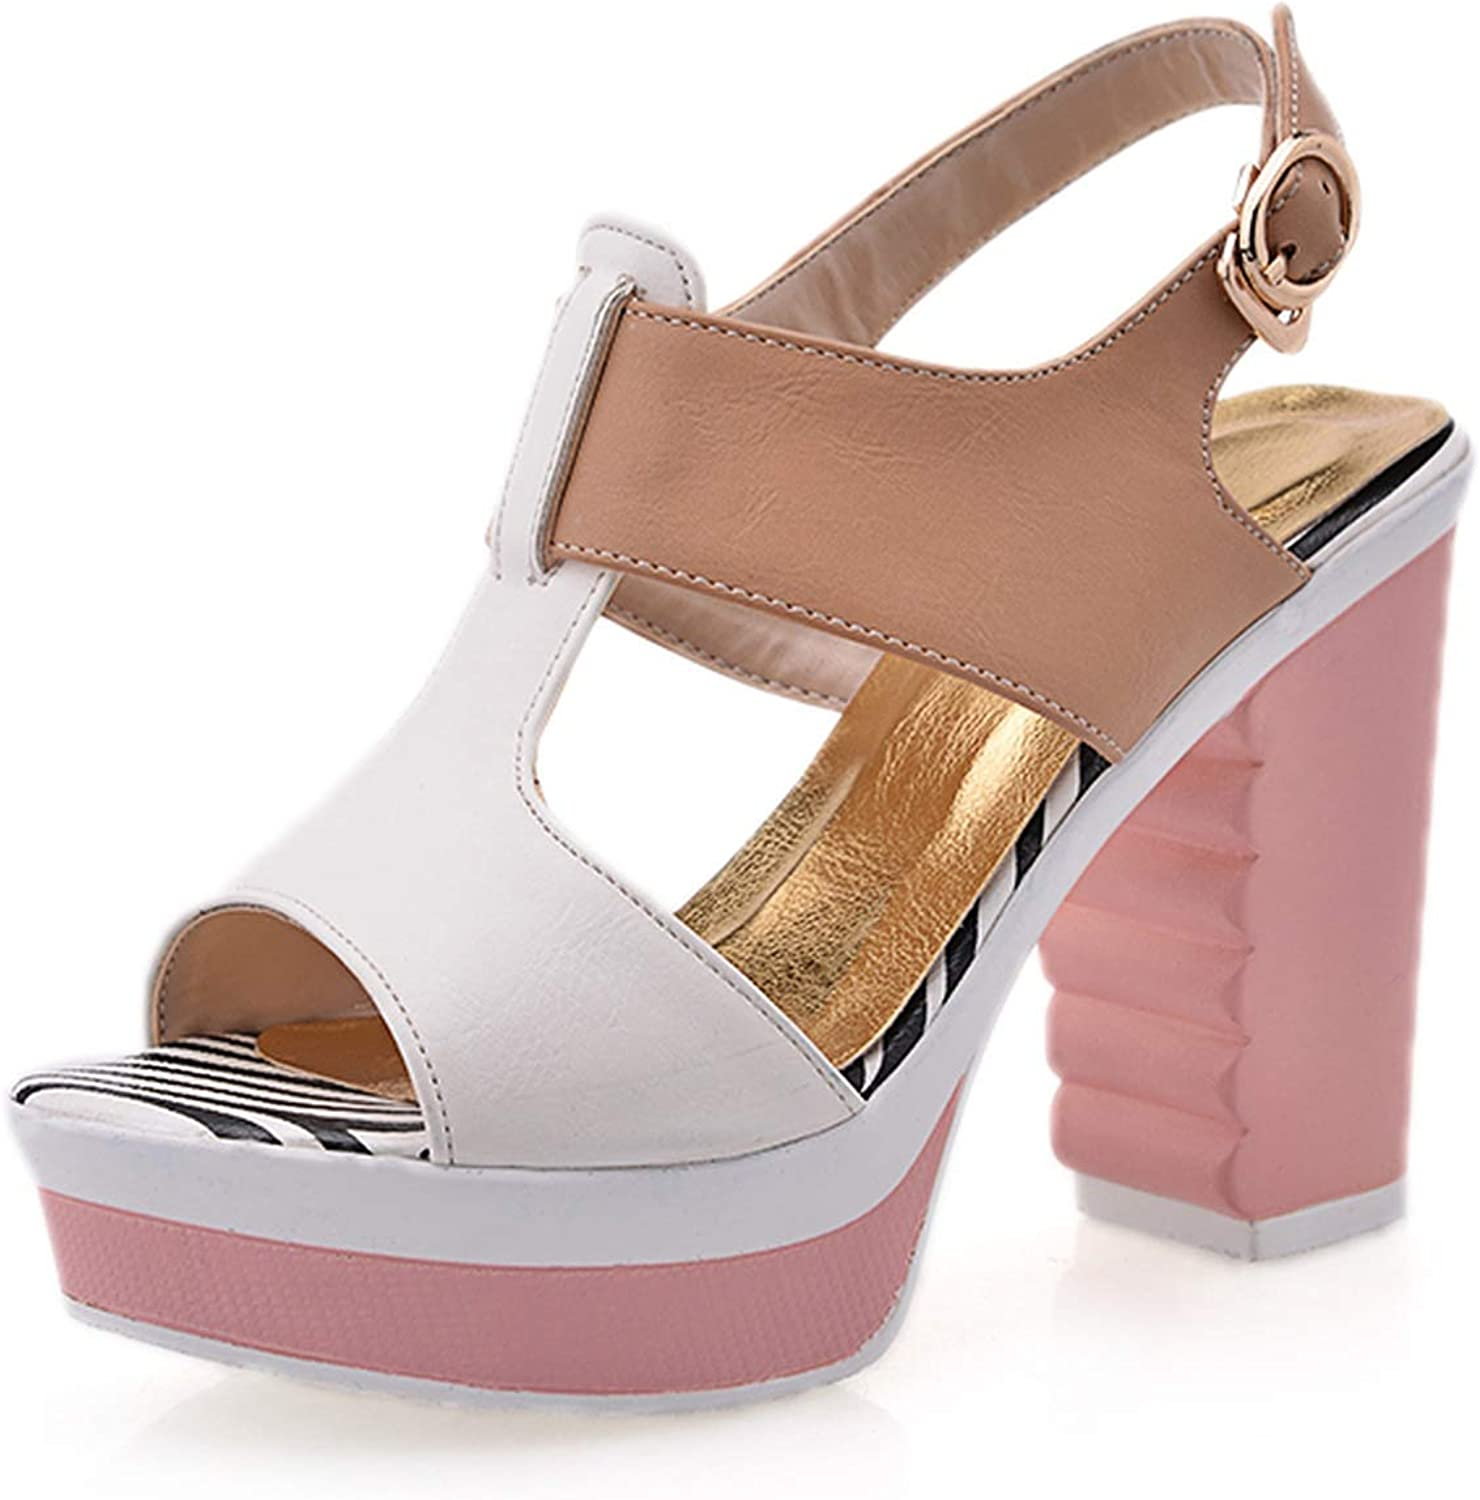 Mo Duo Lady Casual Sandals Pink Beige pu Leather shoes in Summer